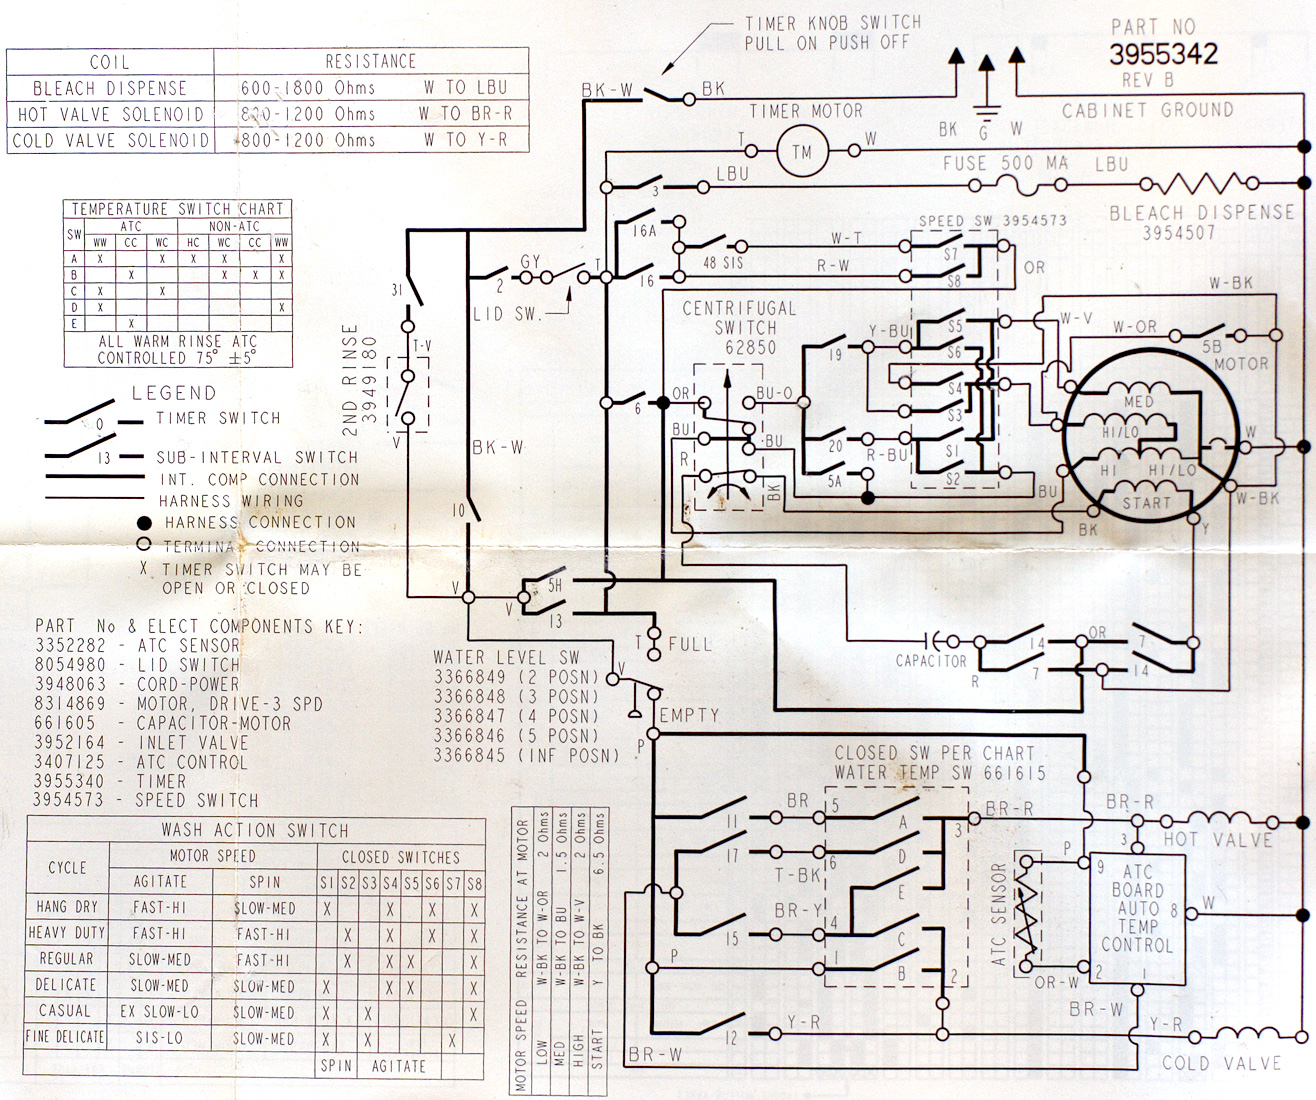 wiring diagram of ifb washing machine wiring diagram of washing machine motor i have a 3 speed motor out of a kenmore washing machine. i ... #13